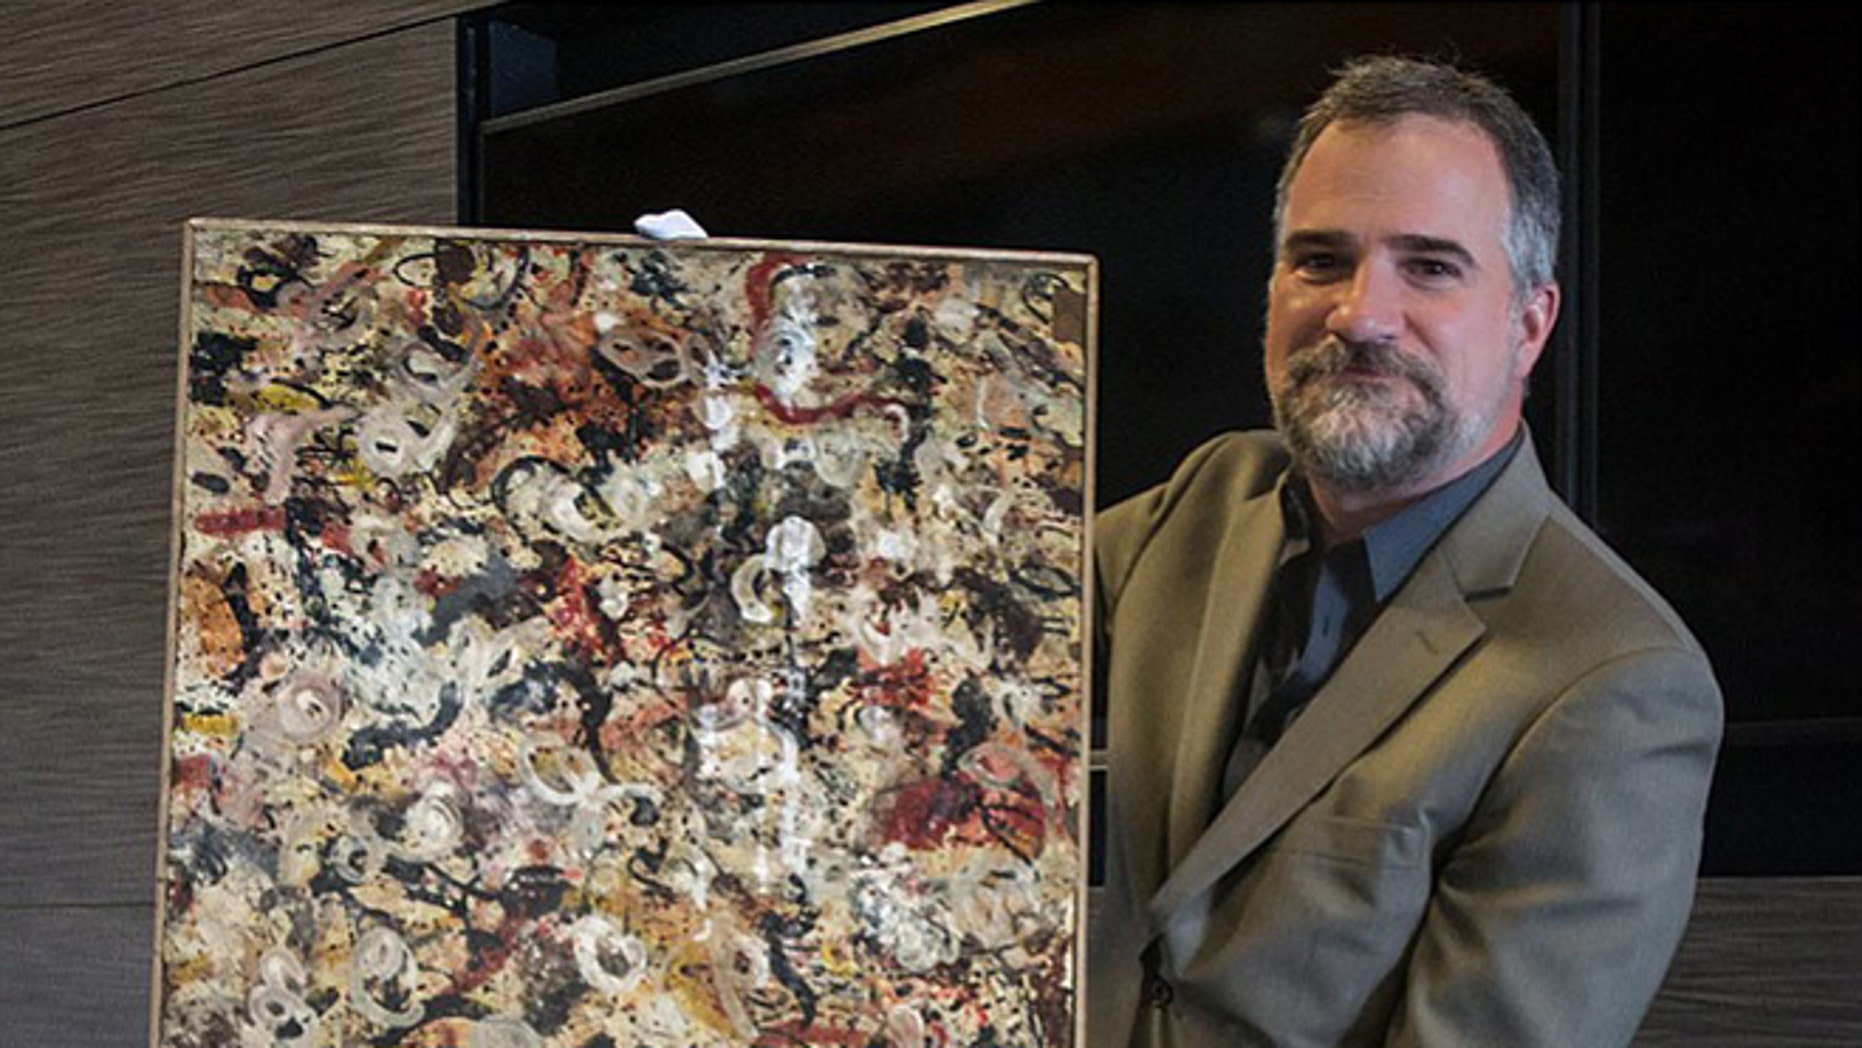 Auctioneer Josh Levine holds a painting that he believes is an original Jackson Pollock and that will go up for auction June 20.